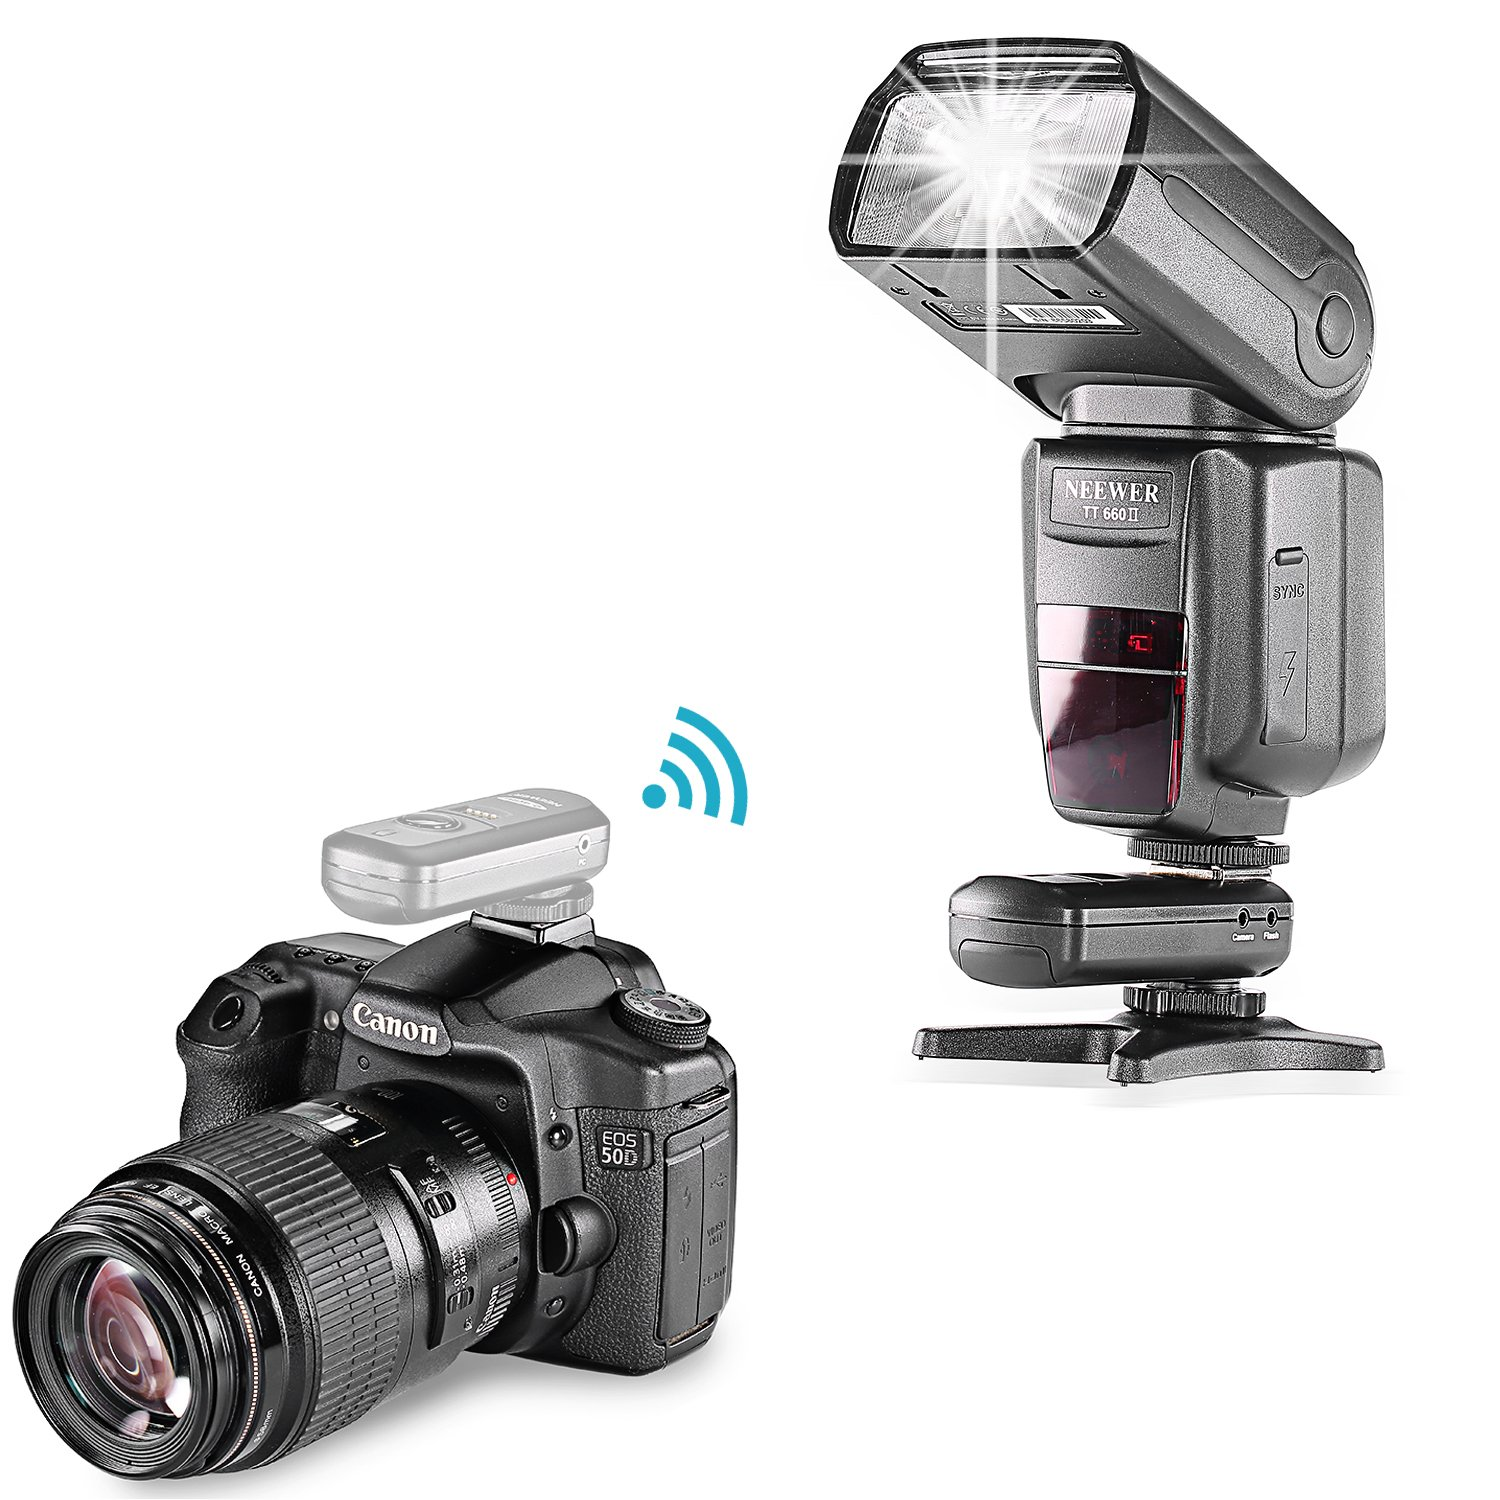 Neewer FC-16 Multi-Channel 2.4GHz 3-IN-1 Wireless Flash//Studio Flash Trigger with Remote Shutter for Nikon D7100 D7000 D5100 D5000 D3200 D3100 D600 D90 D800E D800 D700  D300S D300 D200 D4 D3S D3X D2Xs